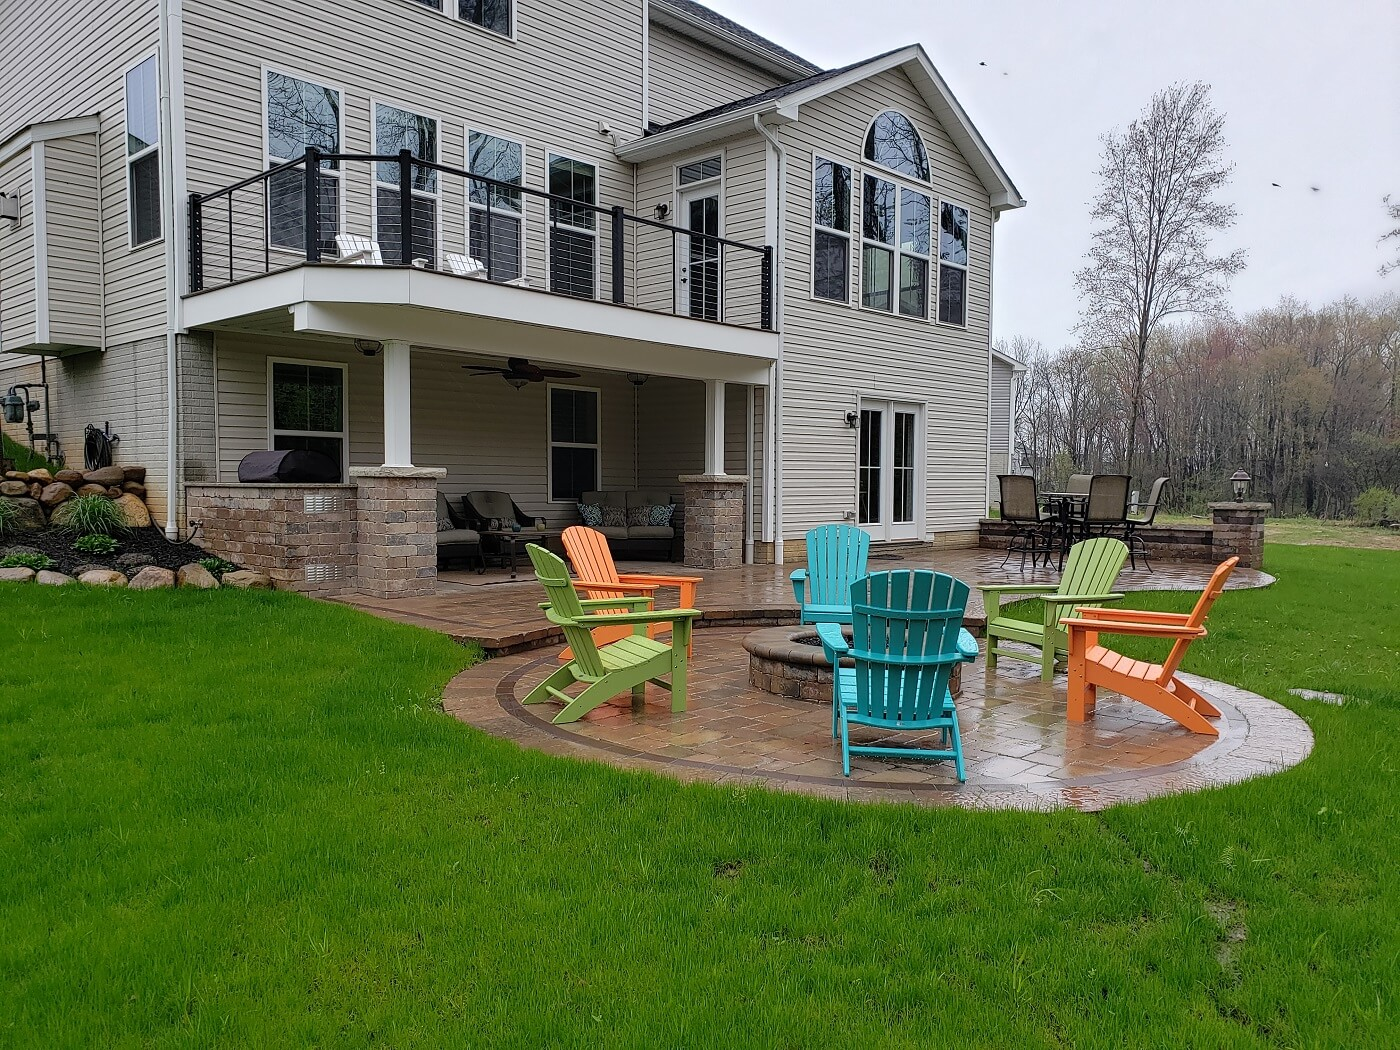 Patio with fire pit and colorful chairs